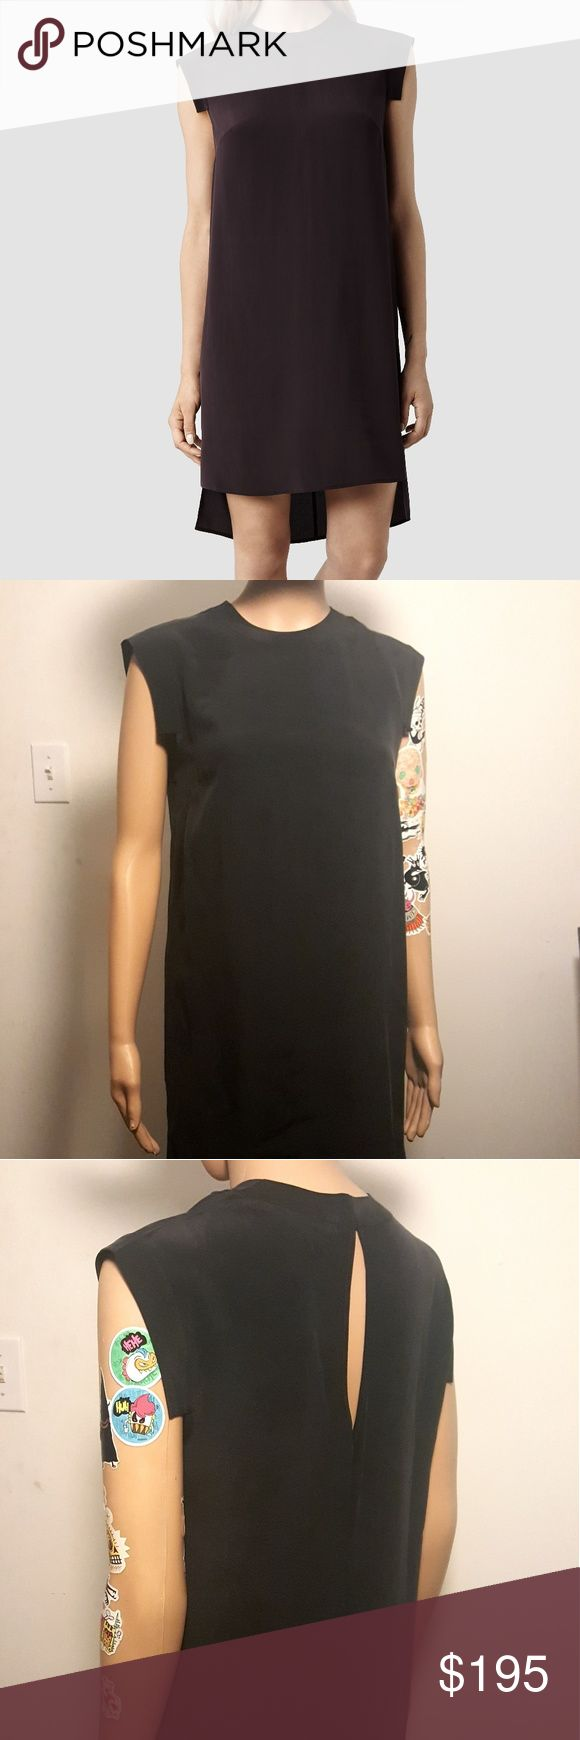 Allsaints Tonya Lew Dress NWT Brand new never worn Allsaints dress. This style tends to be a bit snug so could fit a 2 and a 4 depending on your frame. Will come with an Allsaints shopping bag. All Saints Dresses Asymmetrical